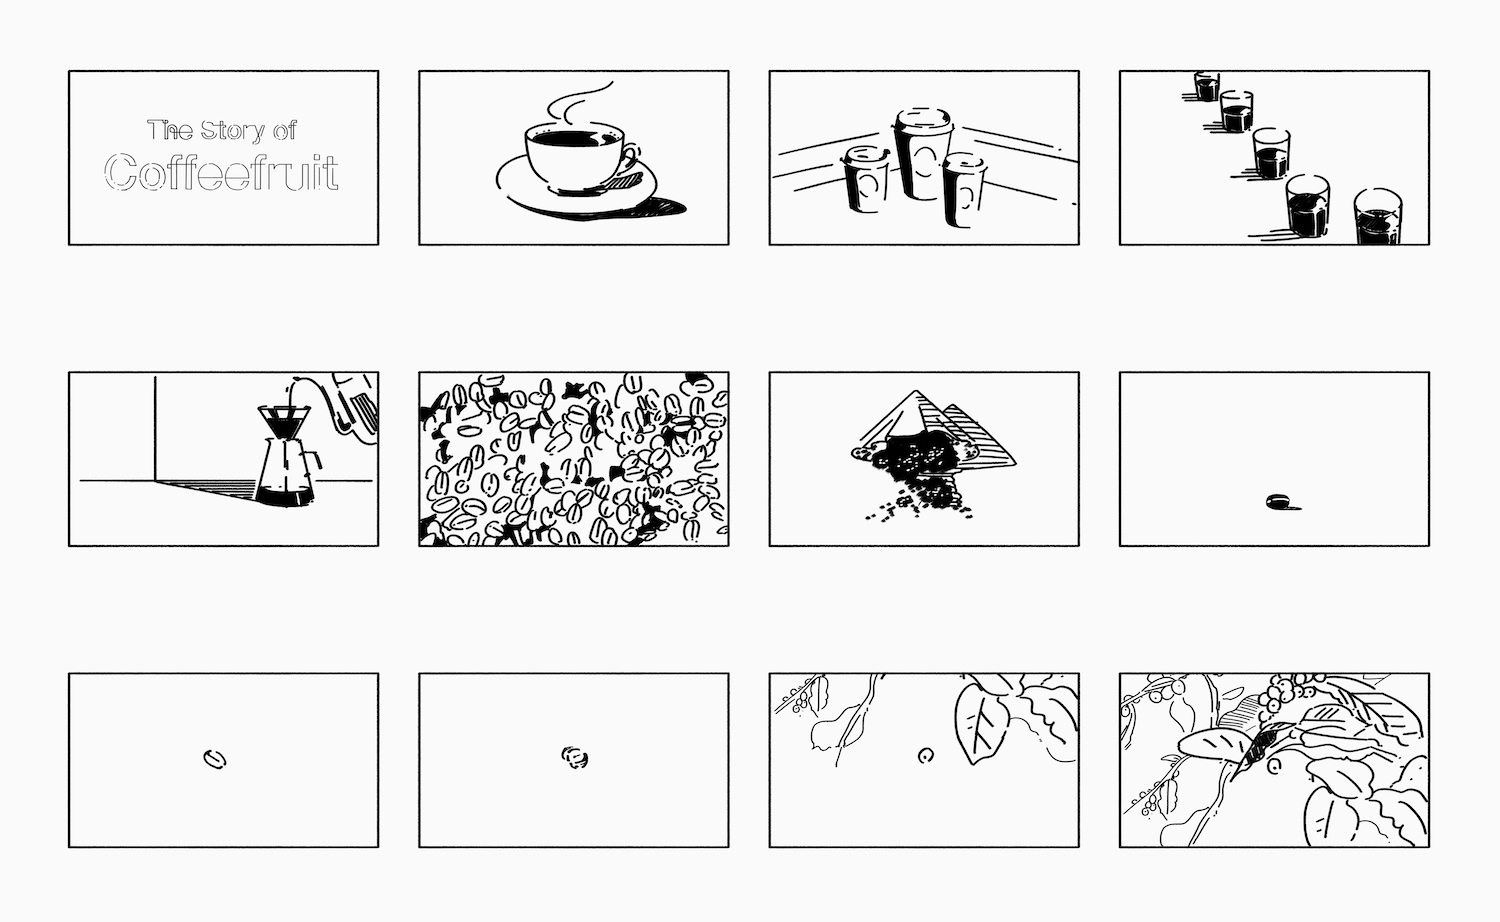 bai_edit_storyboard_vn_001_1500px.png